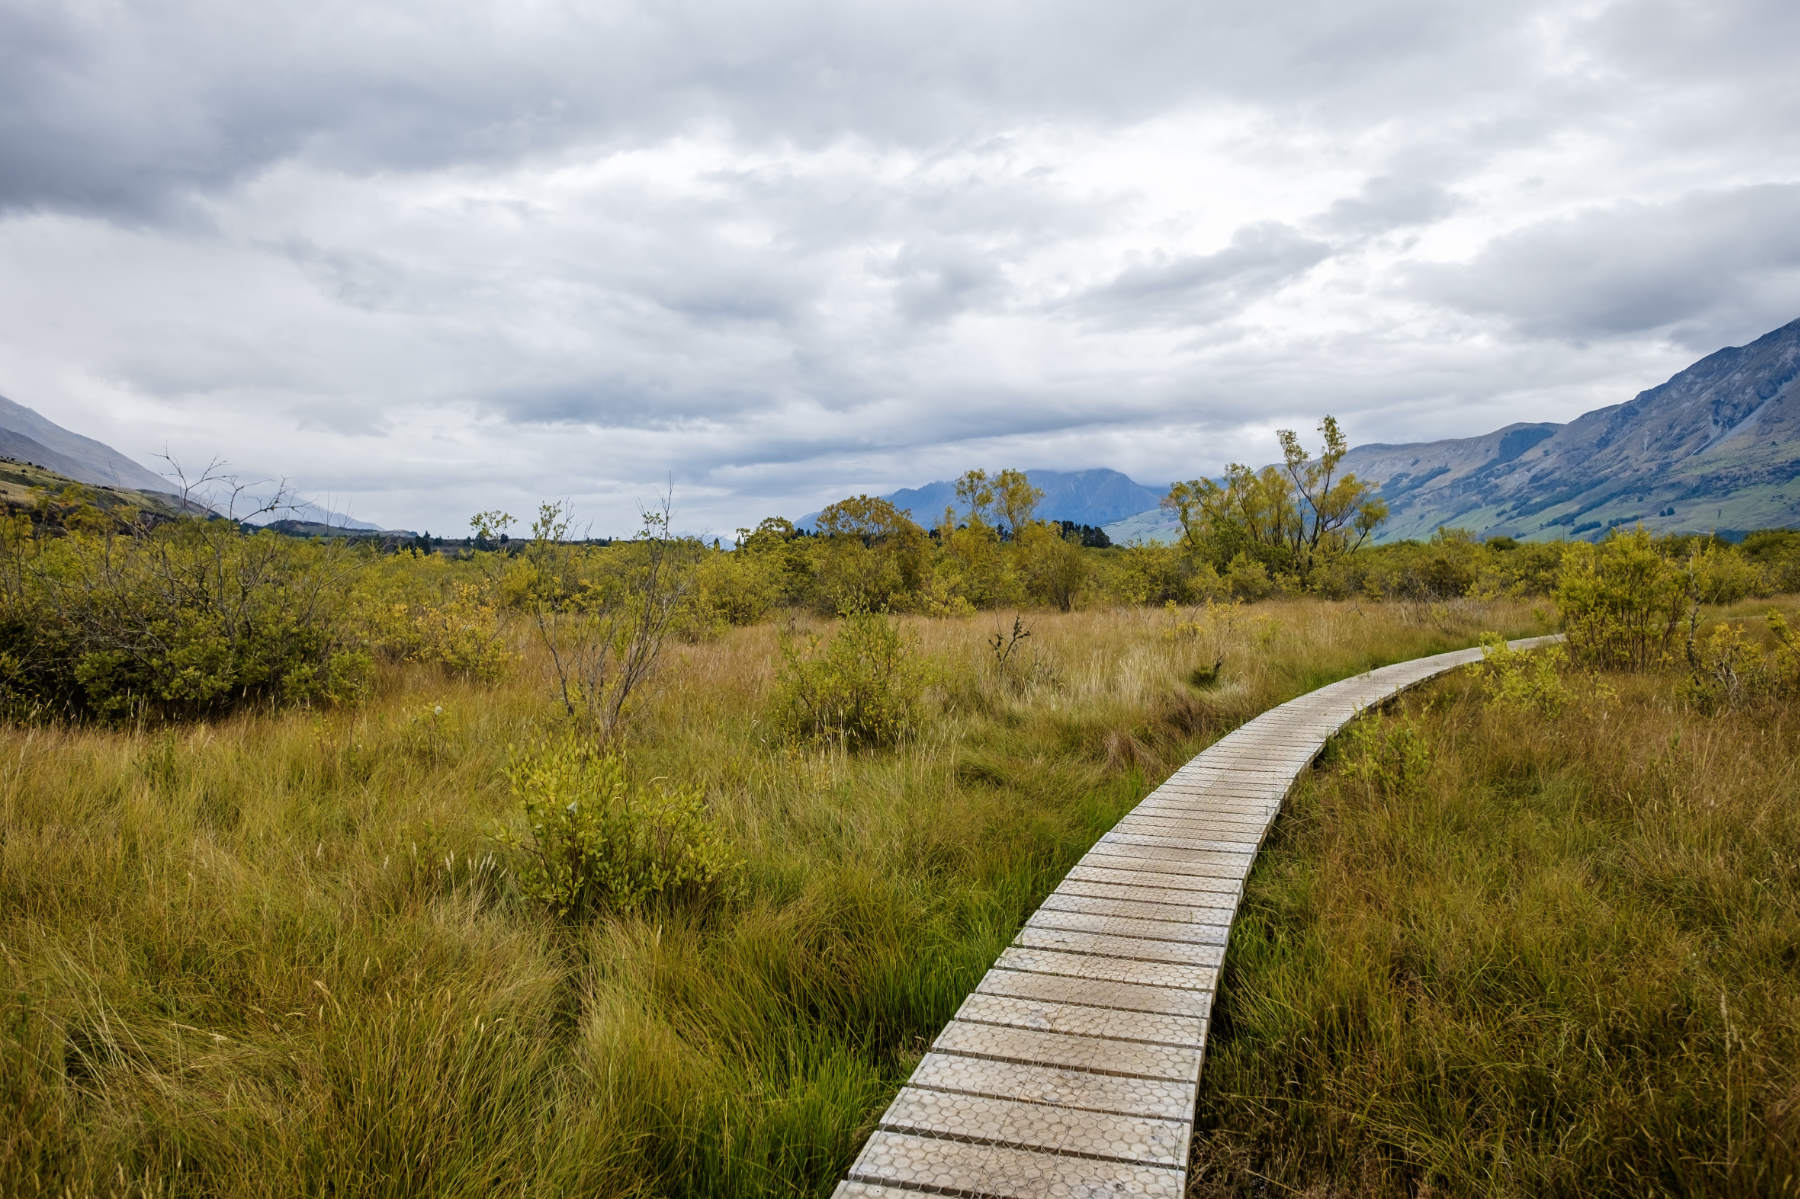 Wooden path glenorchy New Zealand